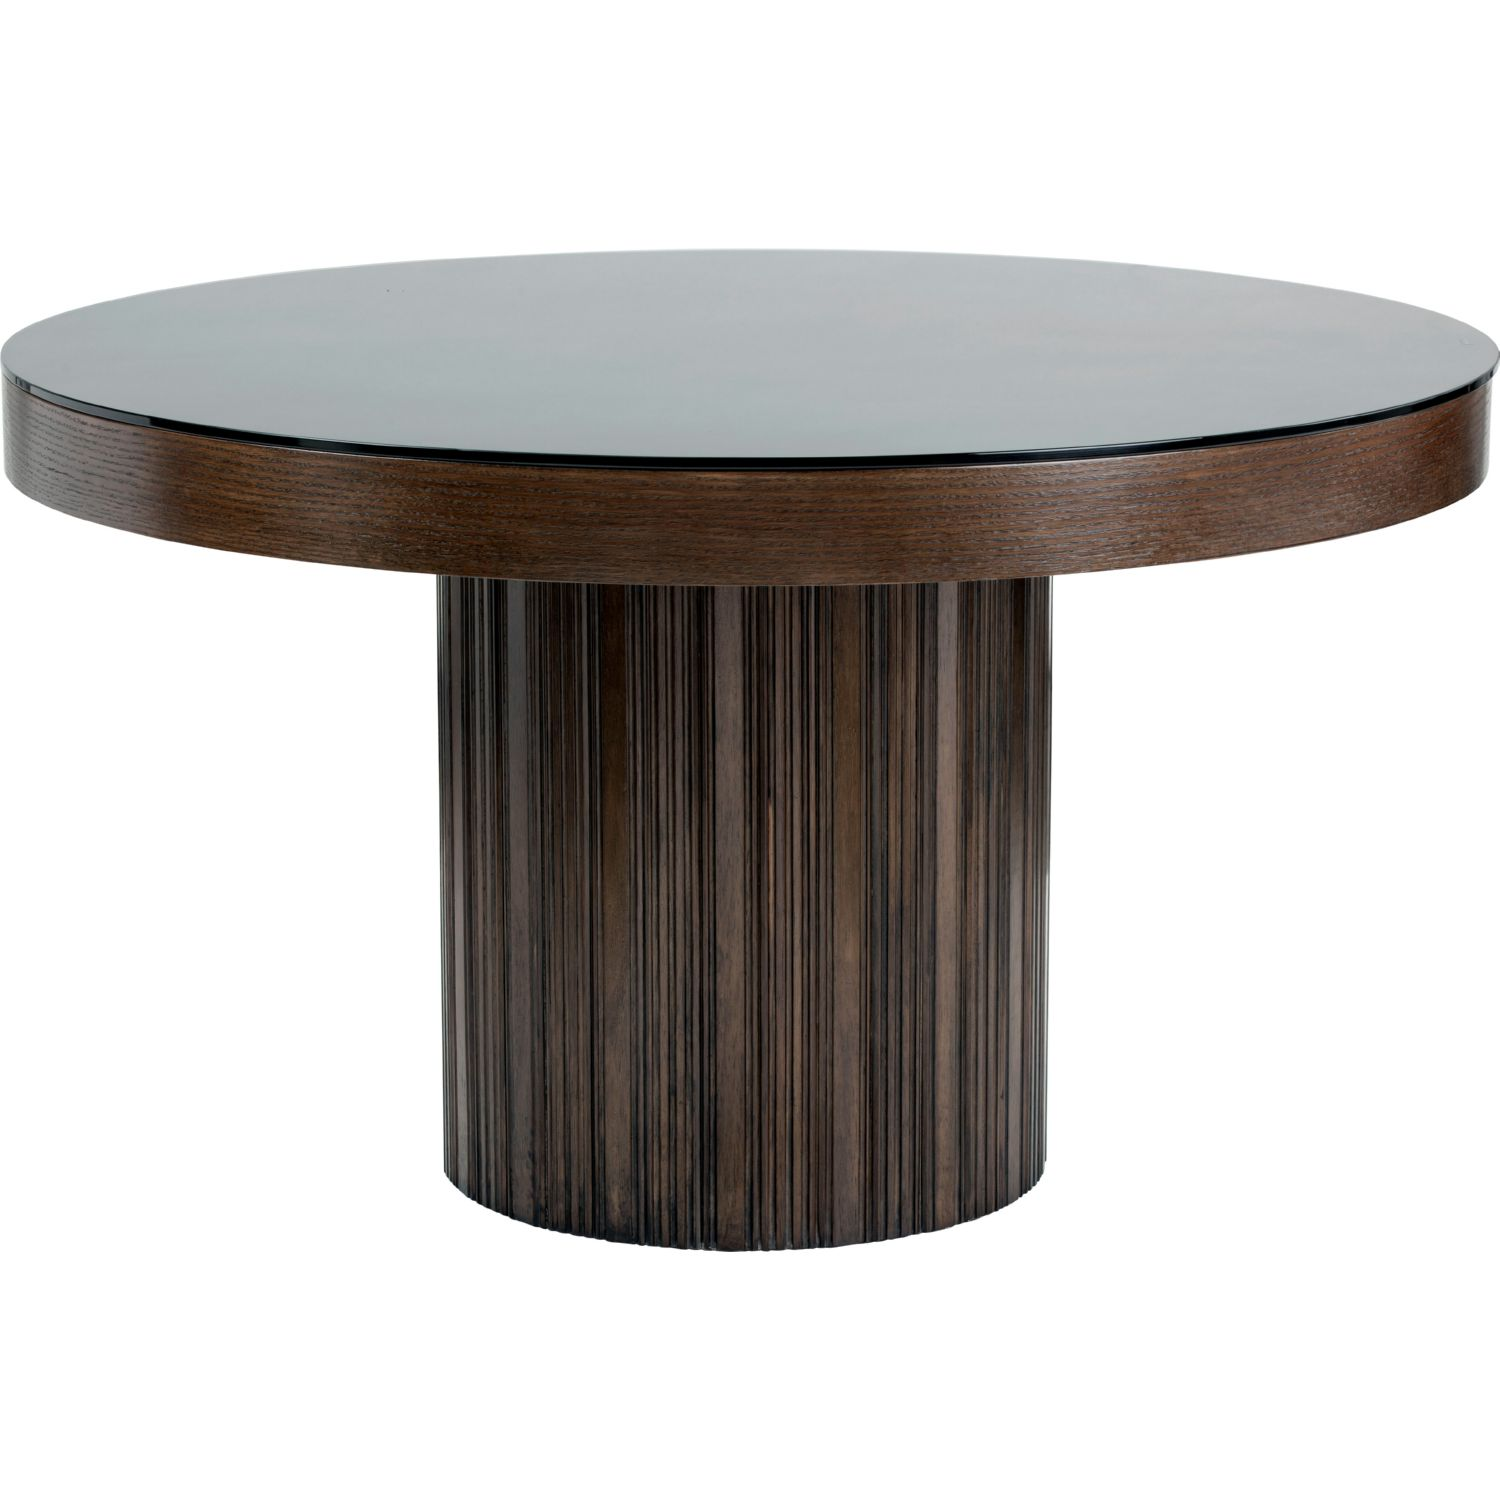 Sunpan Jakarta Round Dining Table in Etched Espresso Wood w